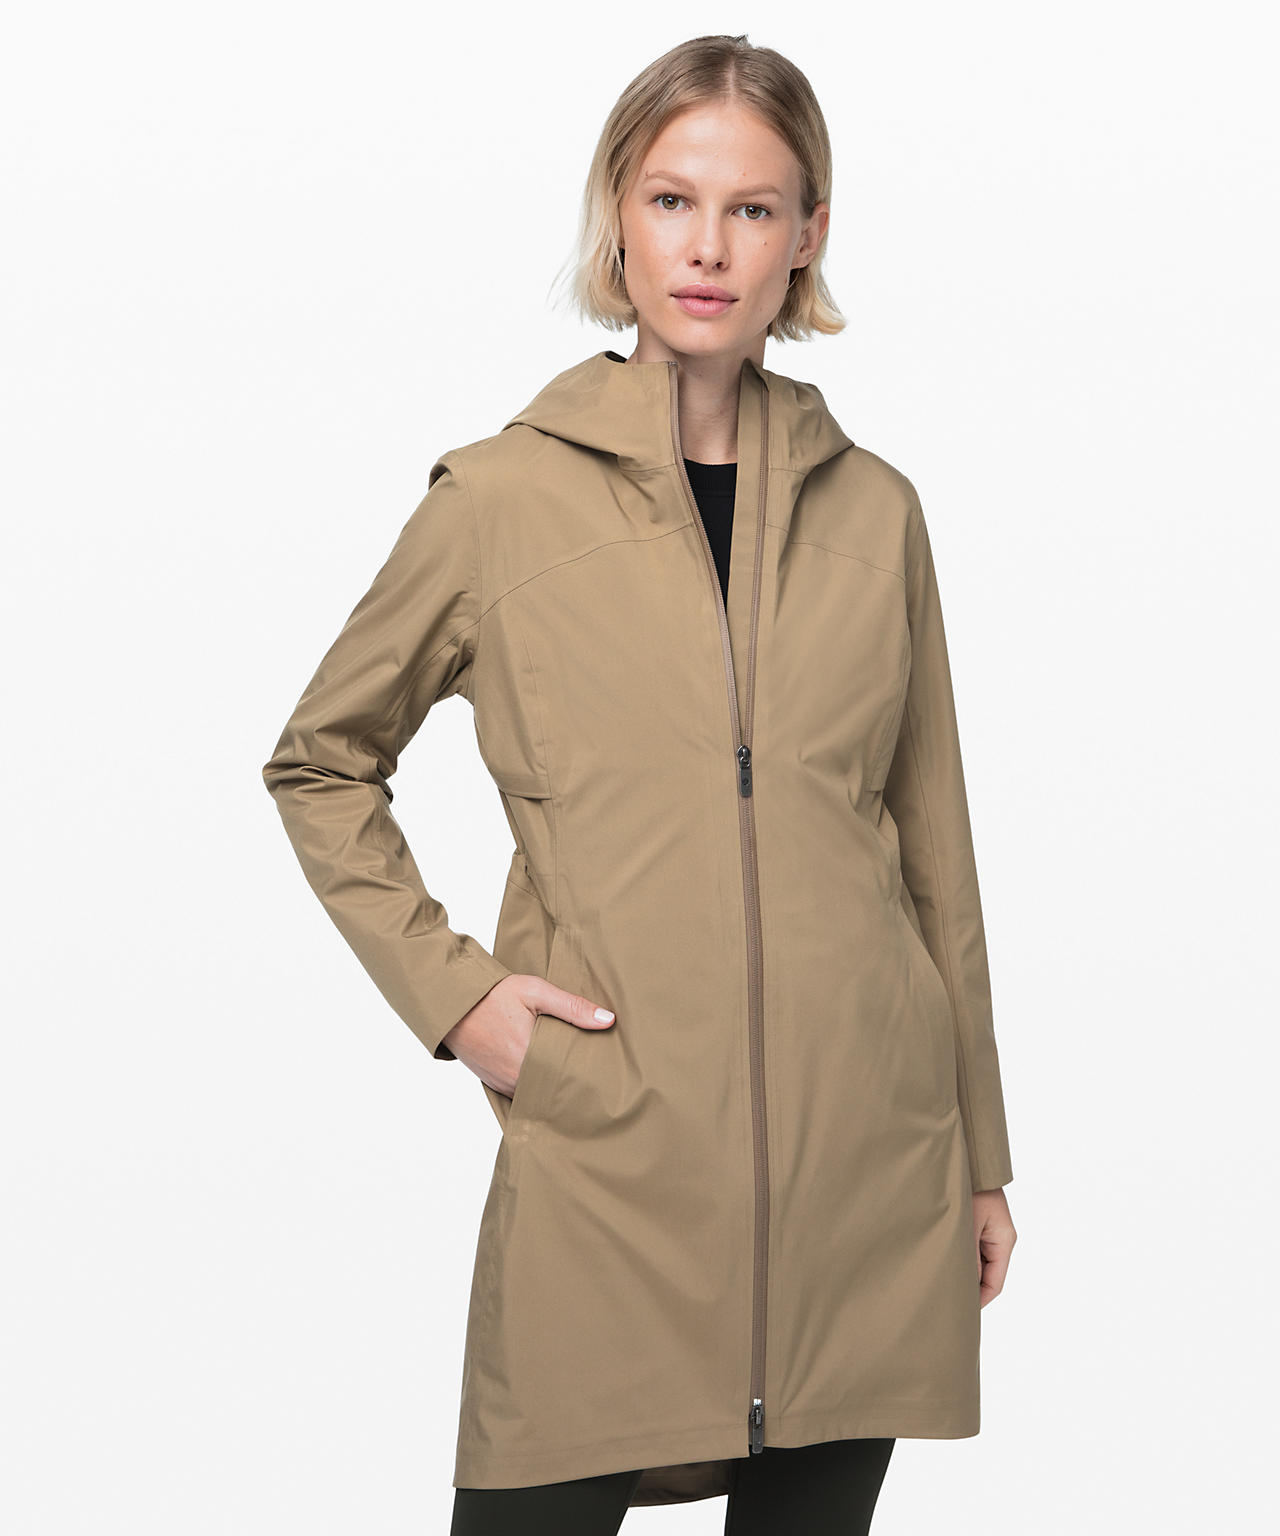 Rain Rebel Jacket, Frontier, Lululemon Upload, Lululemon Rain Jacket